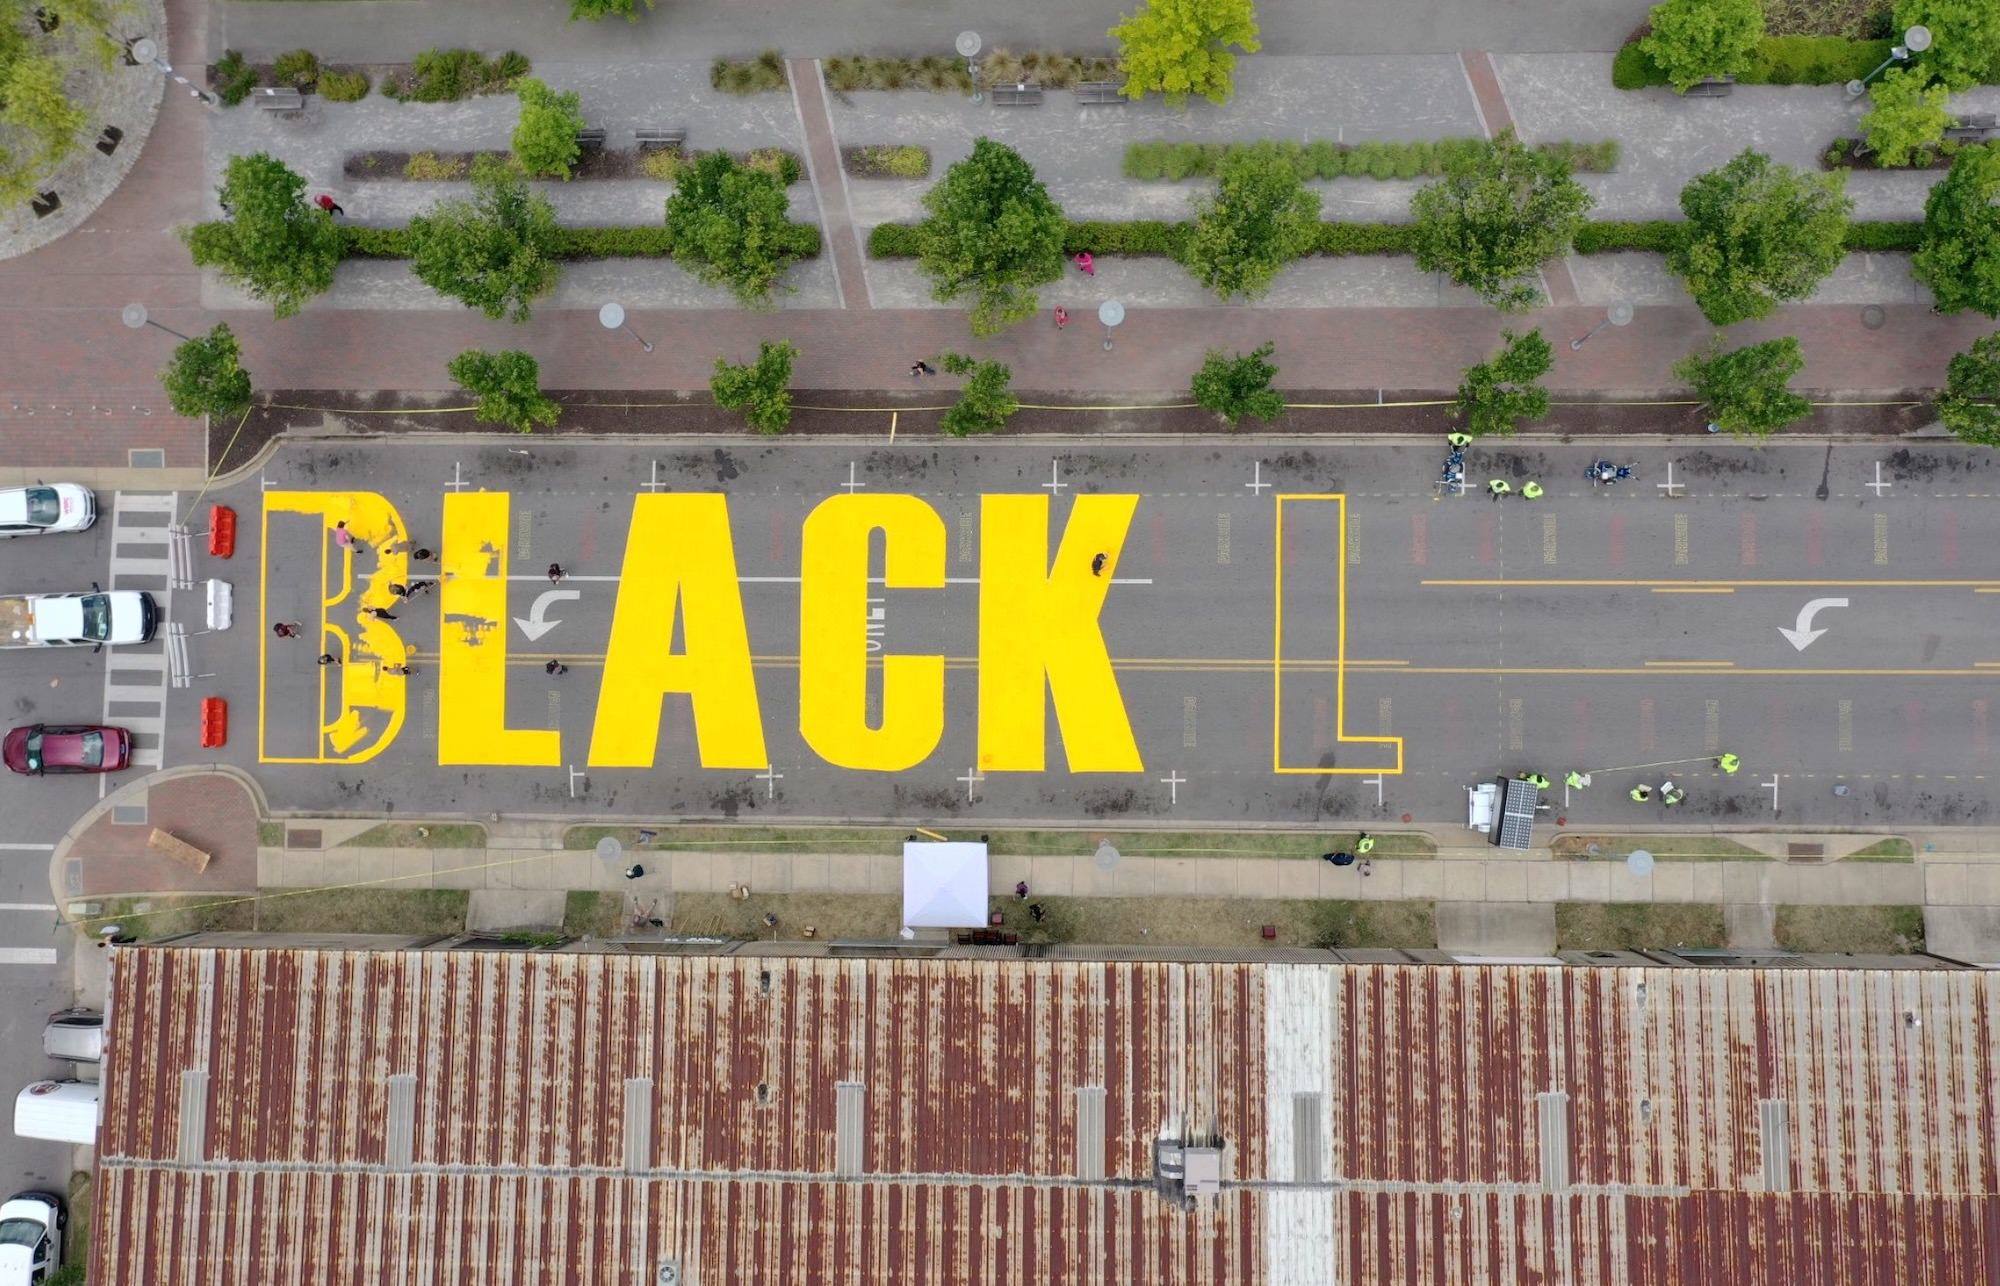 Black Lives Matter mural appears on the streets in Birmingham, Alabama